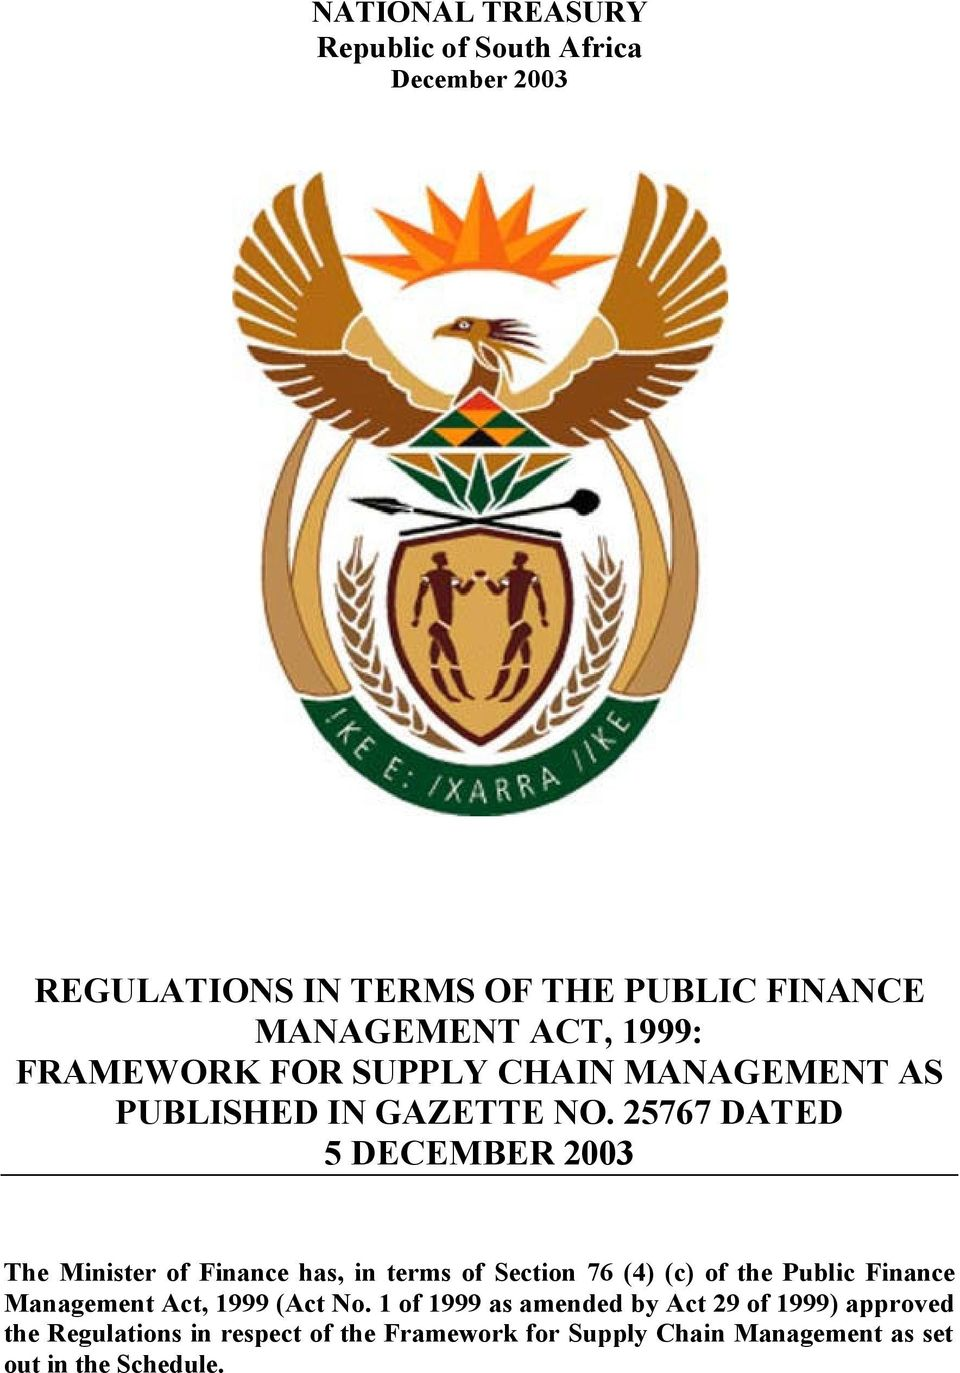 25767 DATED 5 DECEMBER 2003 The Minister of Finance has, in terms of Section 76 (4) (c) of the Public Finance